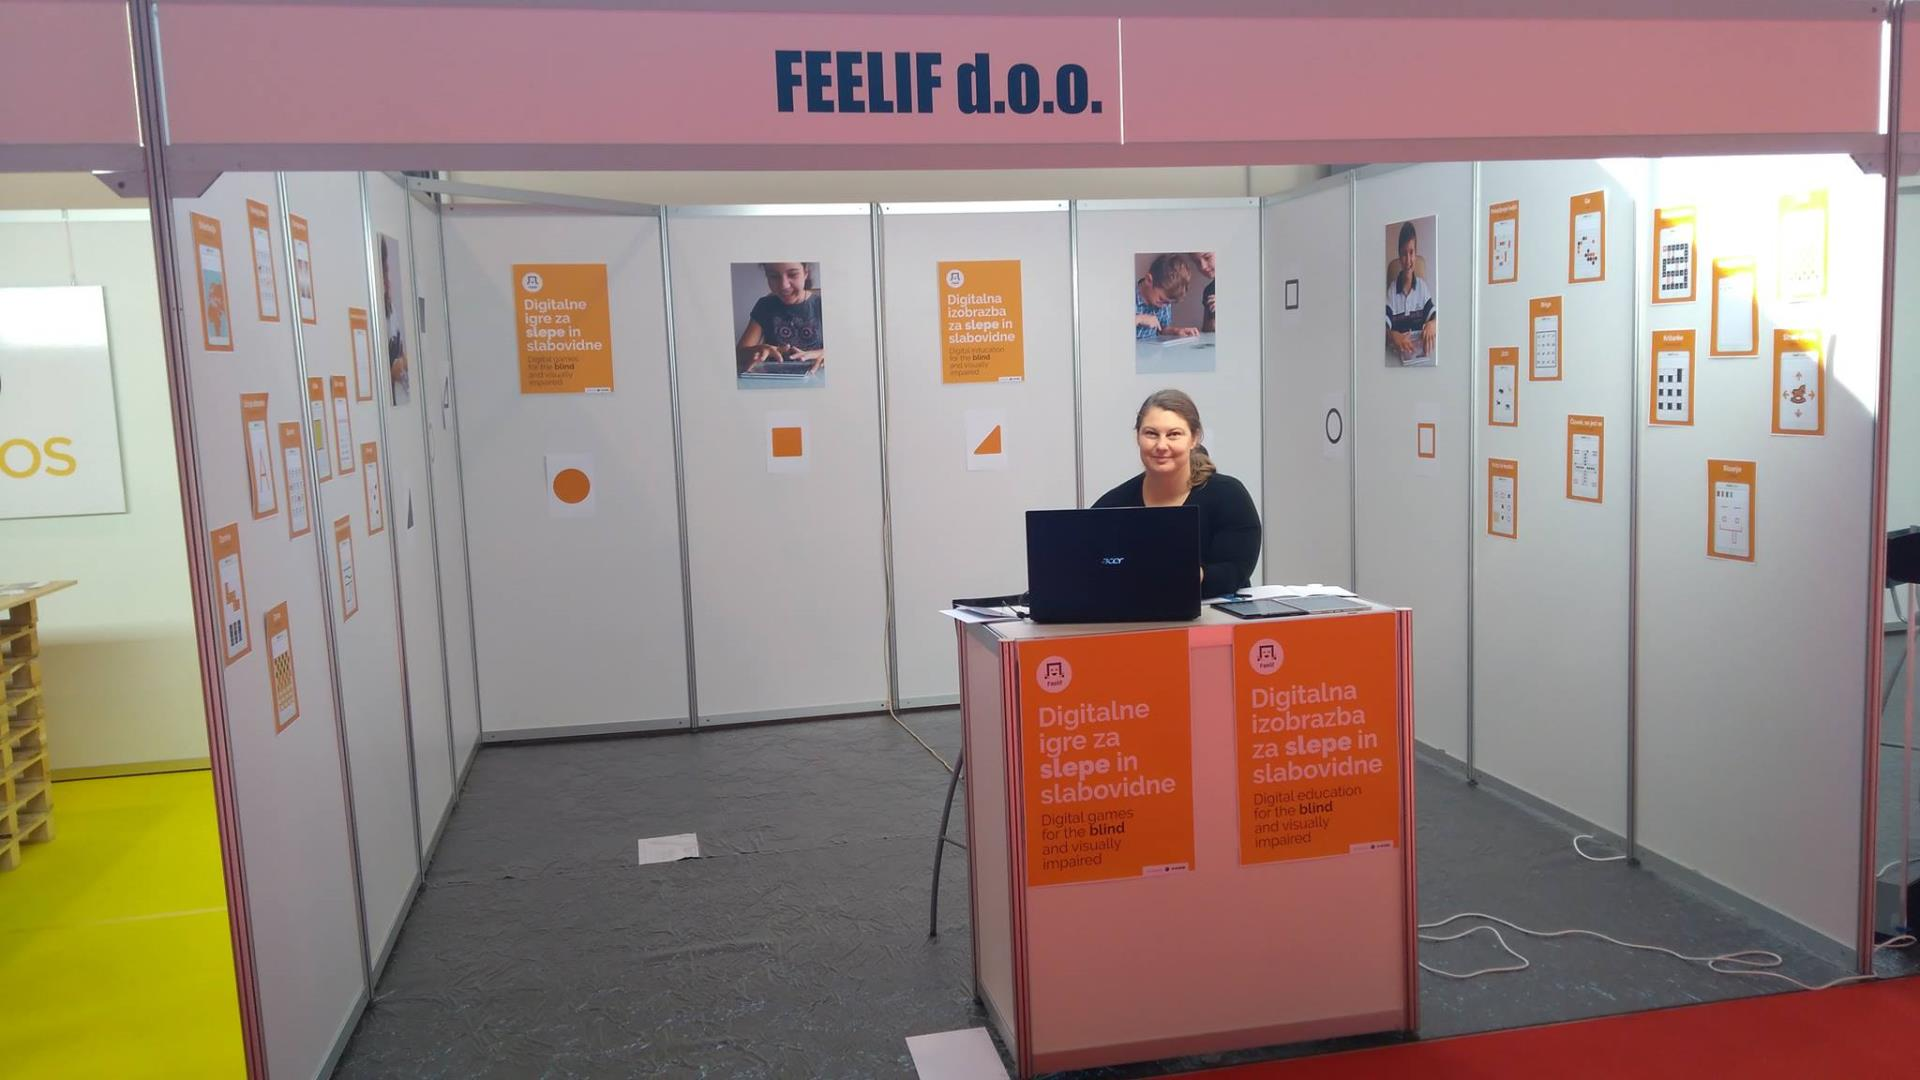 Feelif on 1st Trade Fair for Innovative Digital Solutions - Feel the FUTURE 19 October 2017